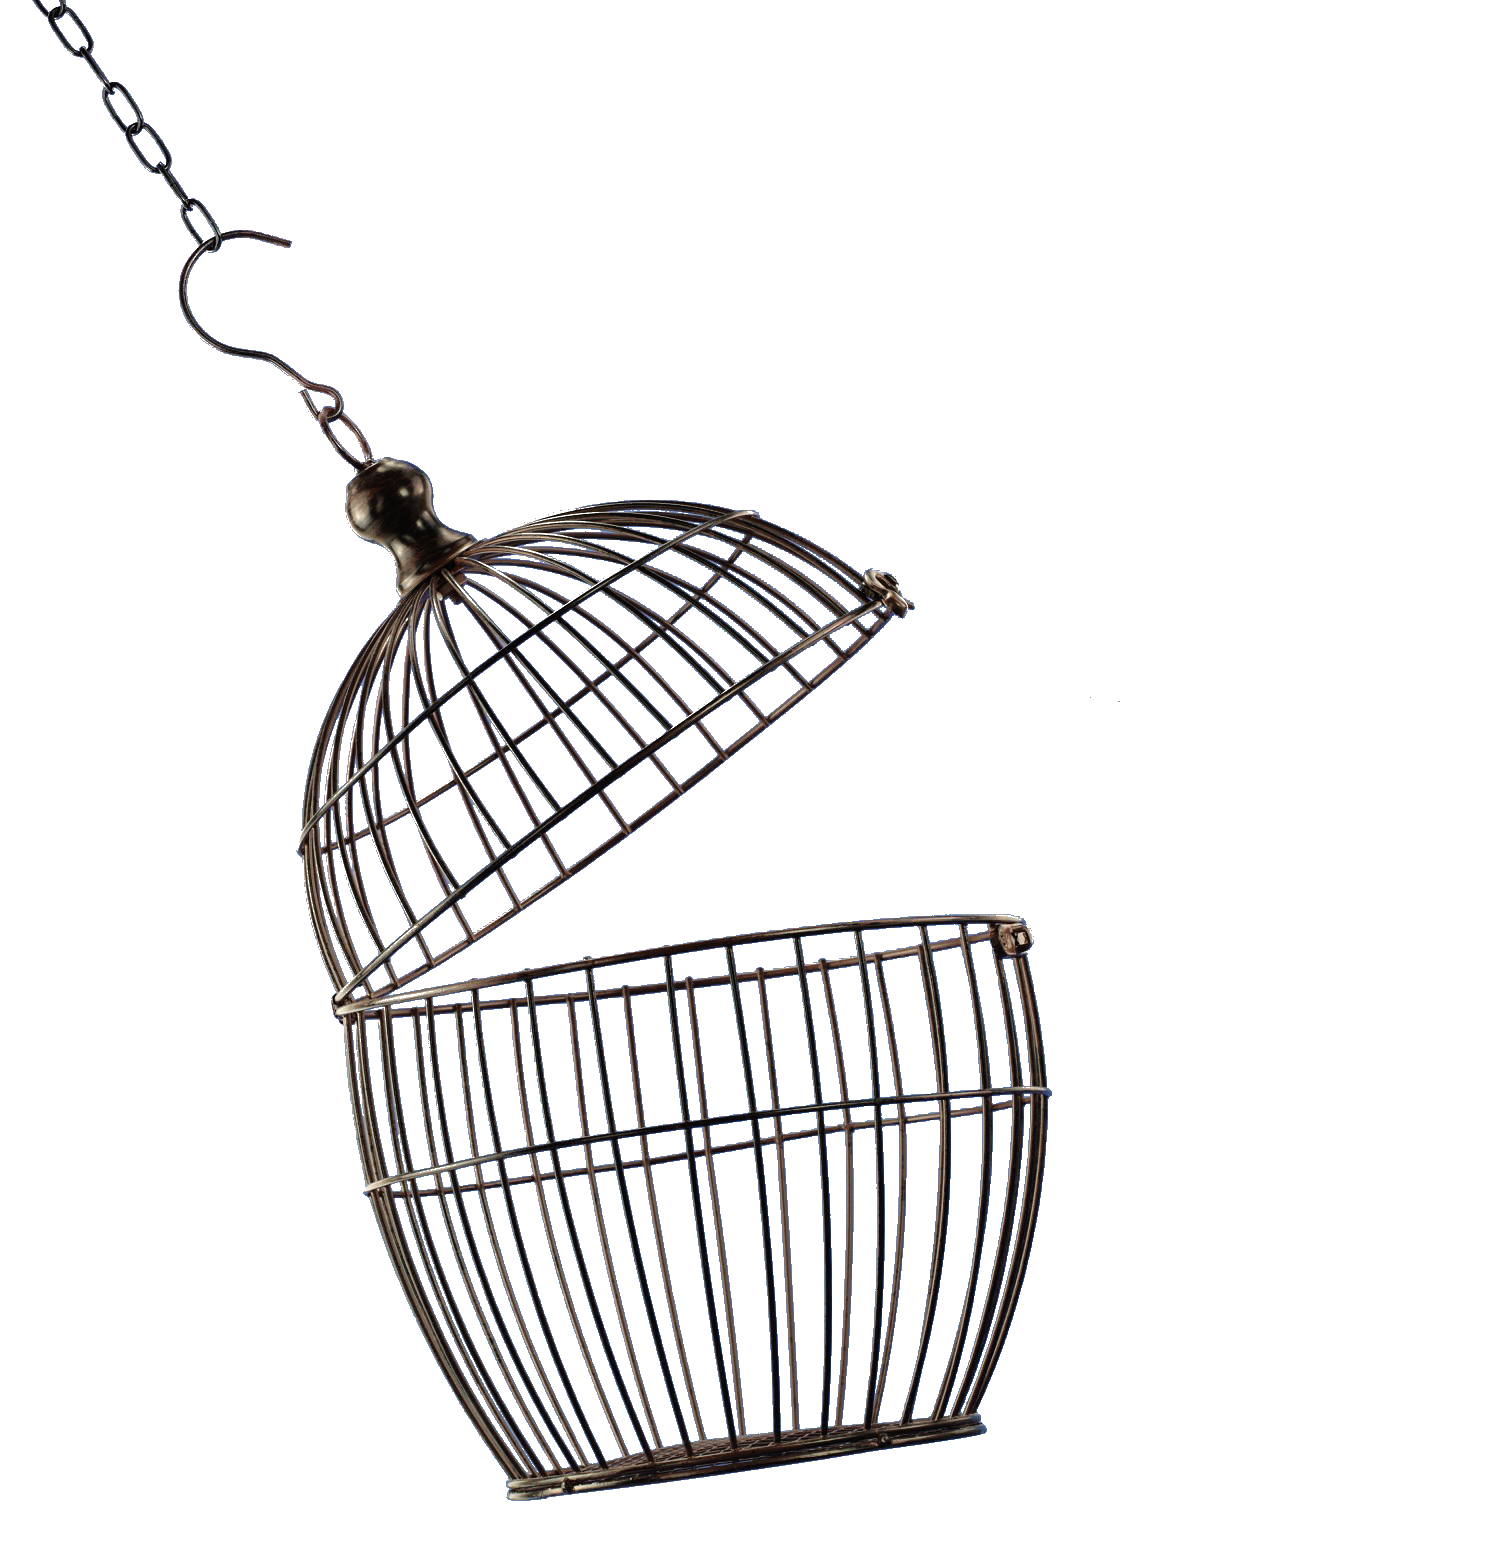 Open cage png. Bird image purepng free